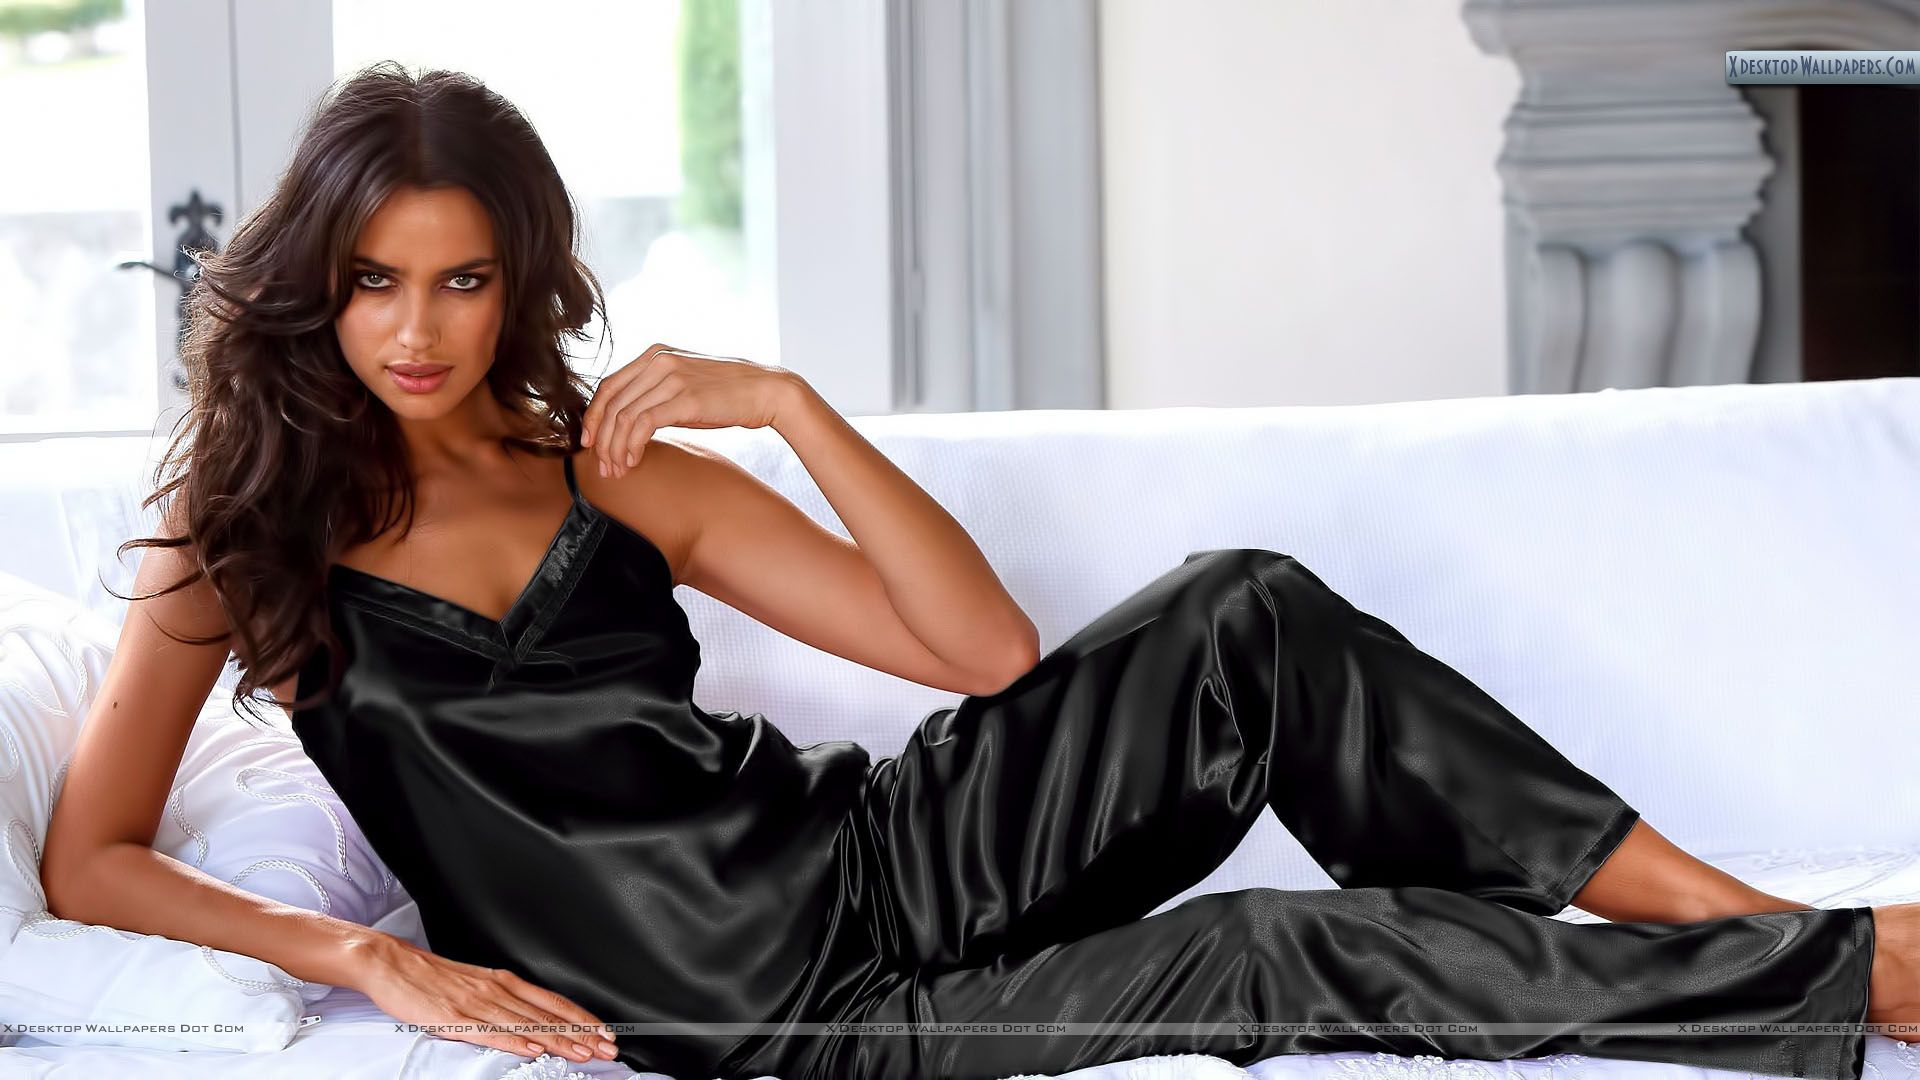 irina shayk in whole black dress wallpaper